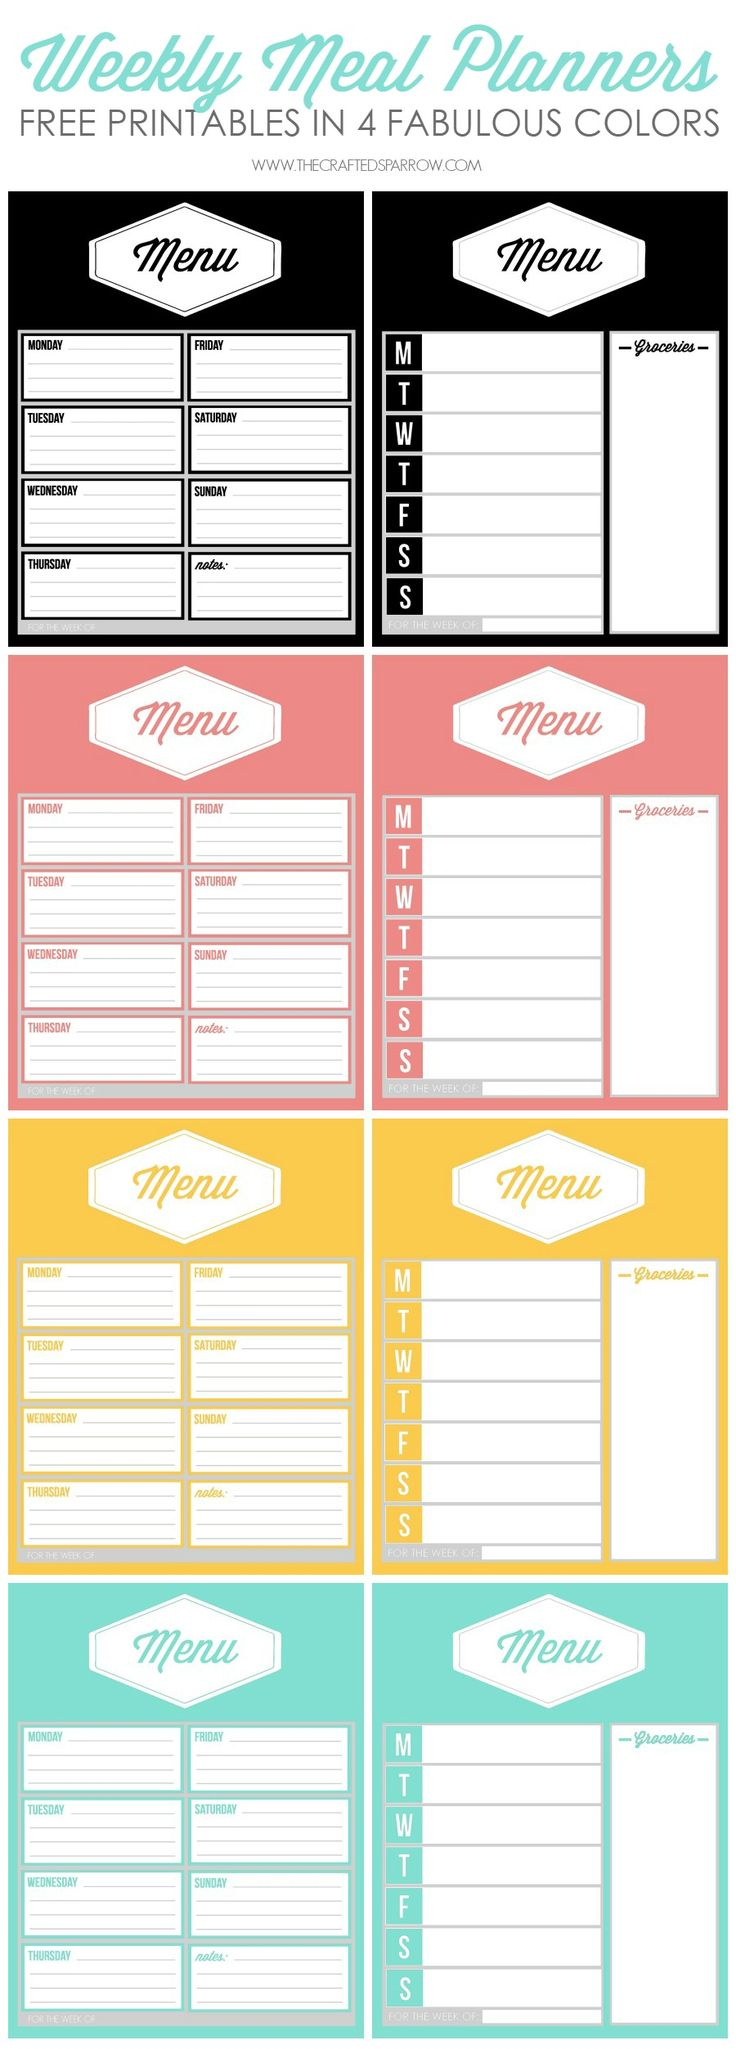 Free Printable Weekly Meal Planners - thecraftedsparrow.com